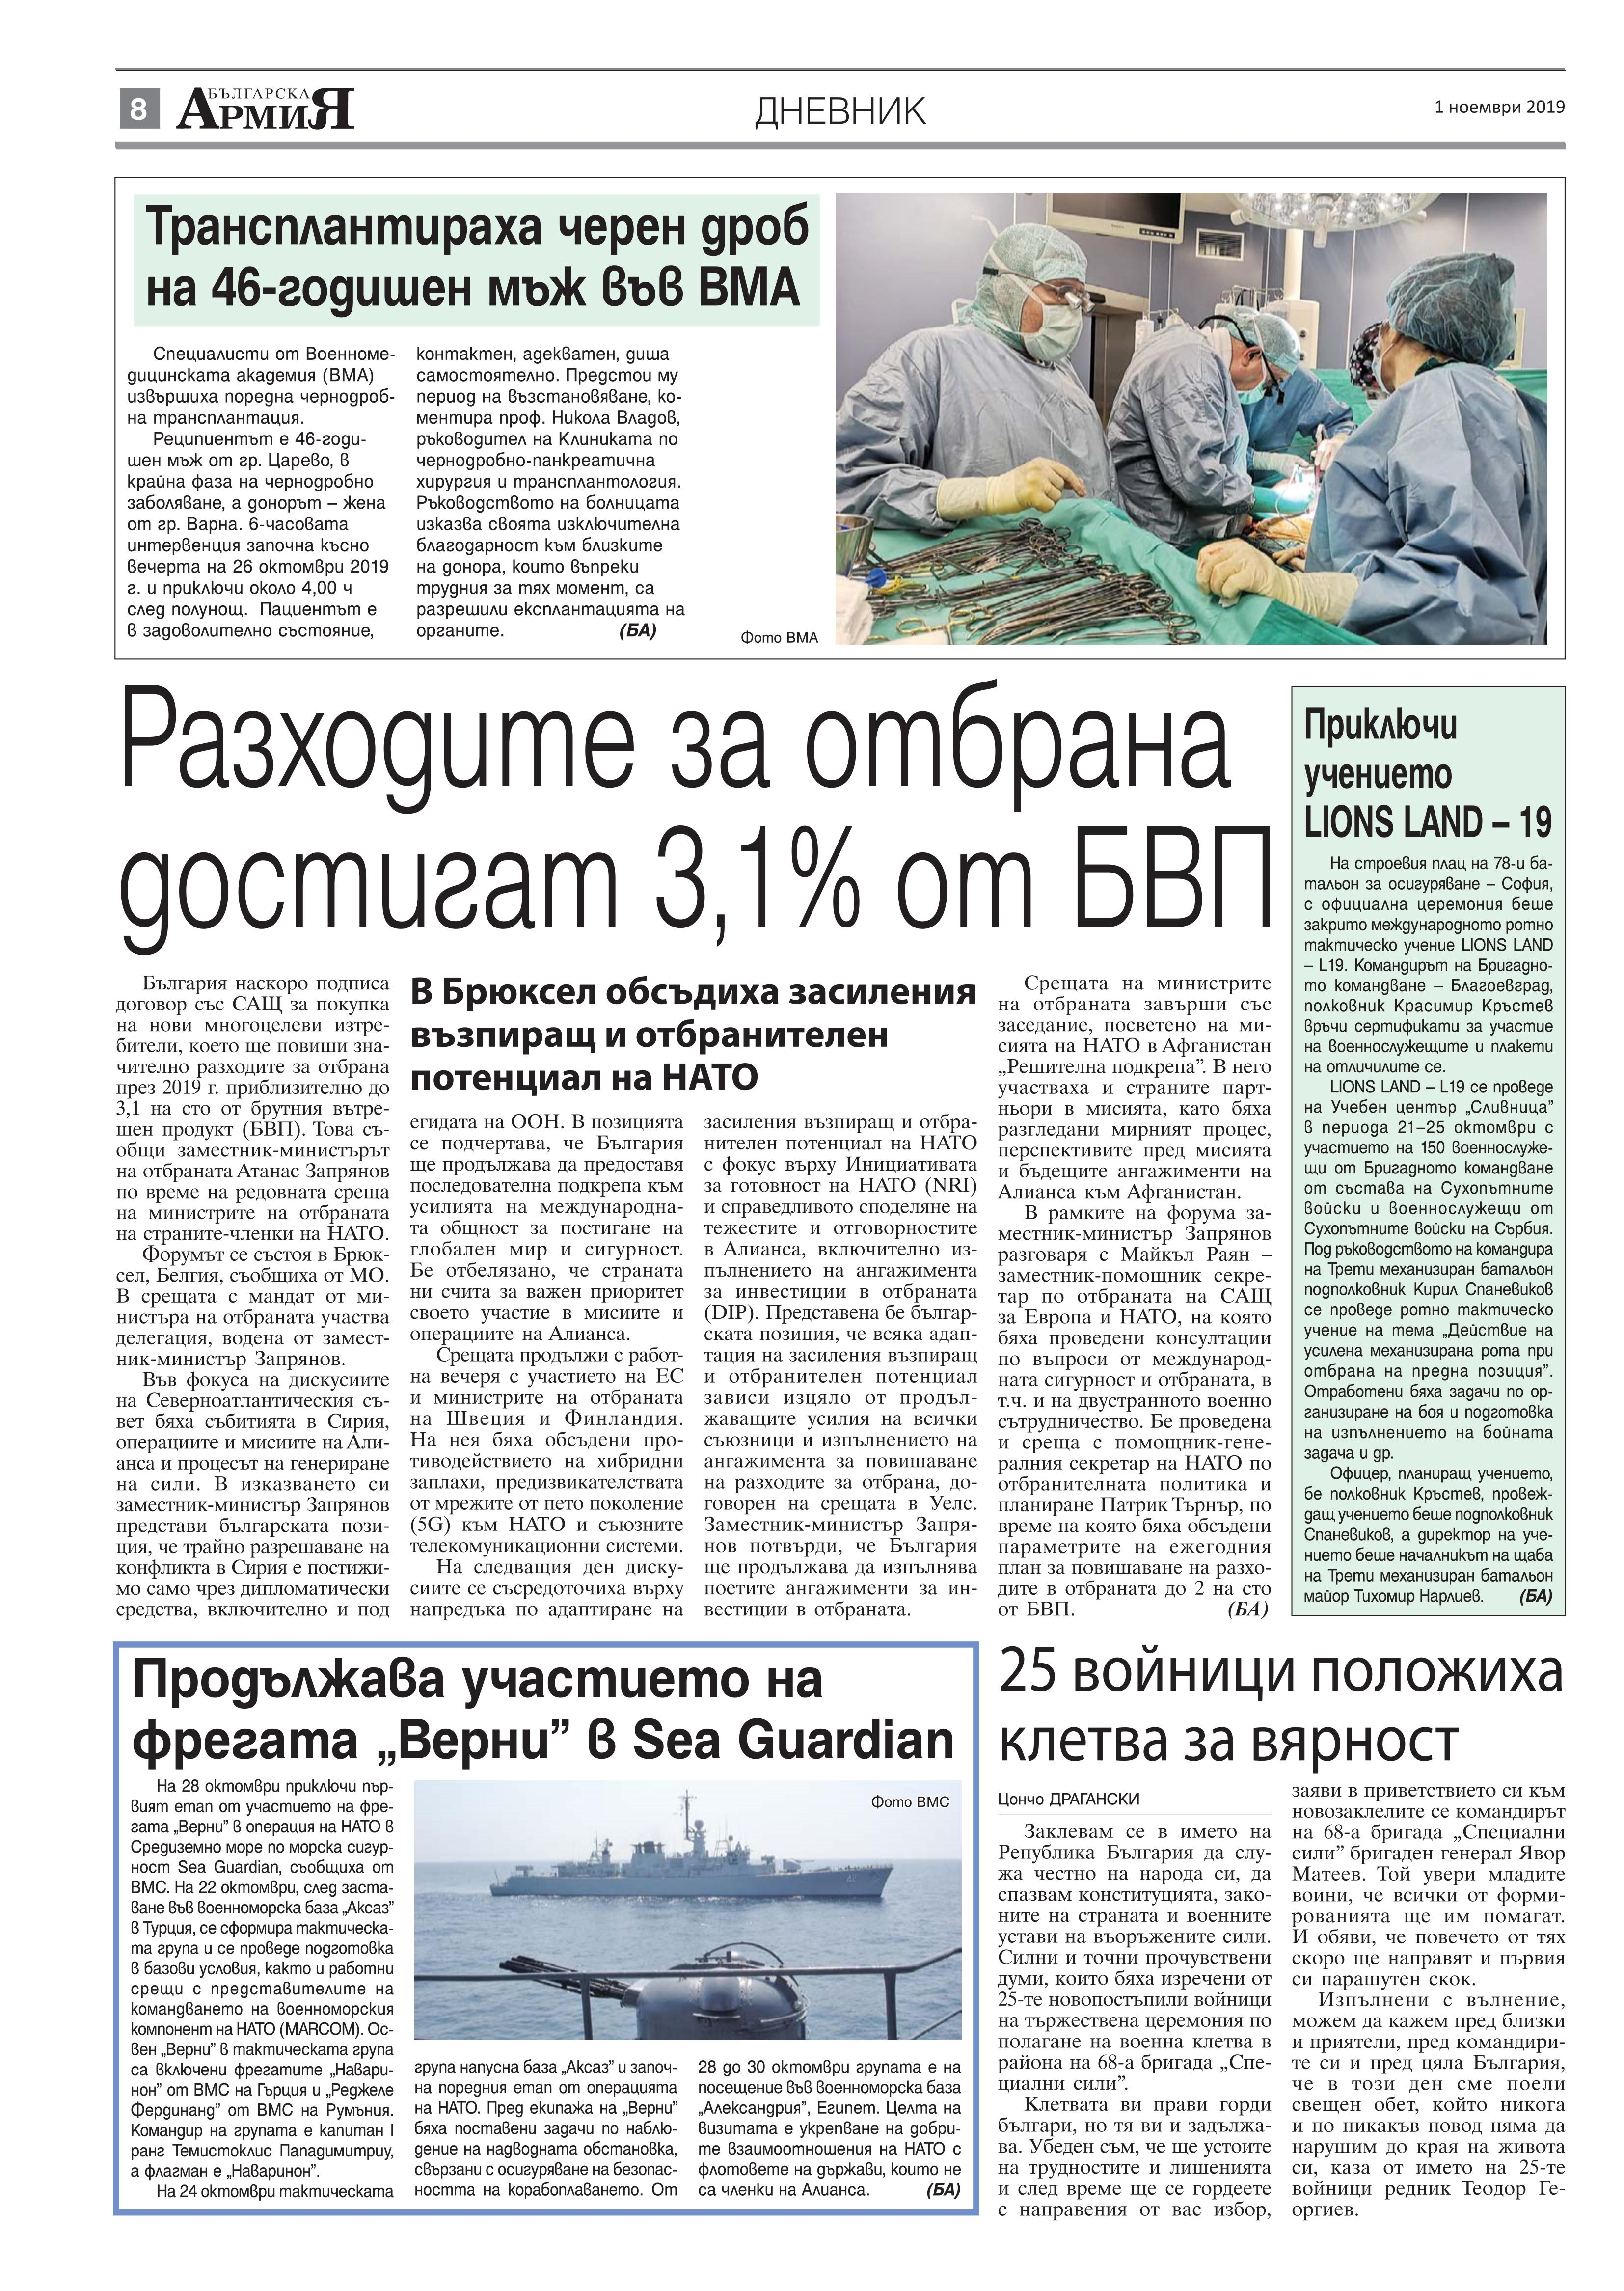 https://www.armymedia.bg/wp-content/uploads/2015/06/08.page1_-111.jpg